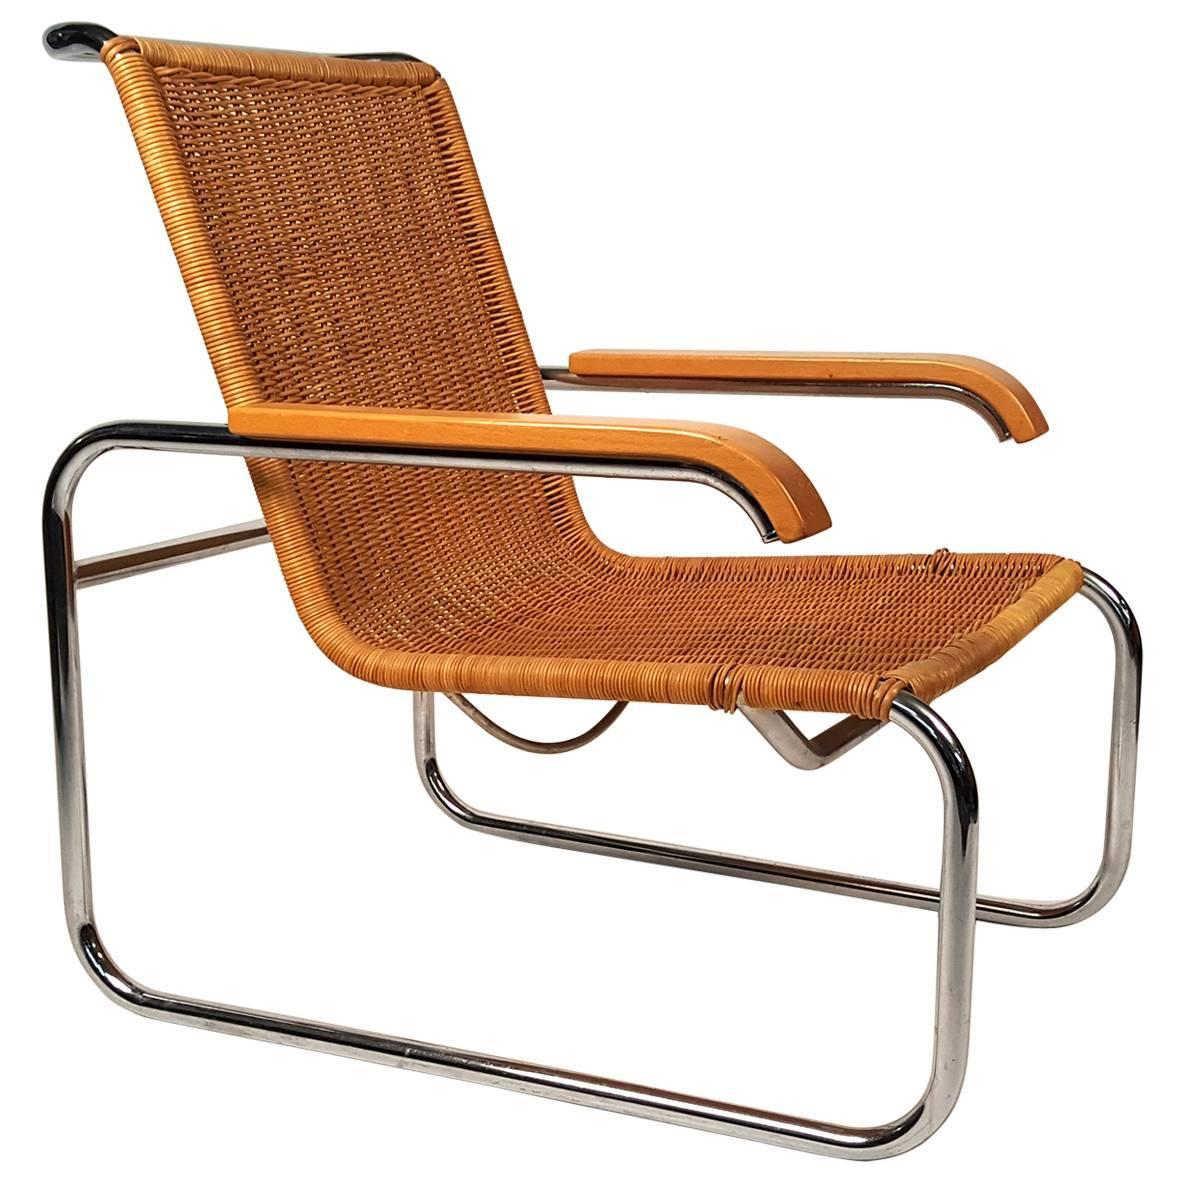 marcel breuer chair metal folding chairs with cushion b 35 lounge for sale at 1stdibs